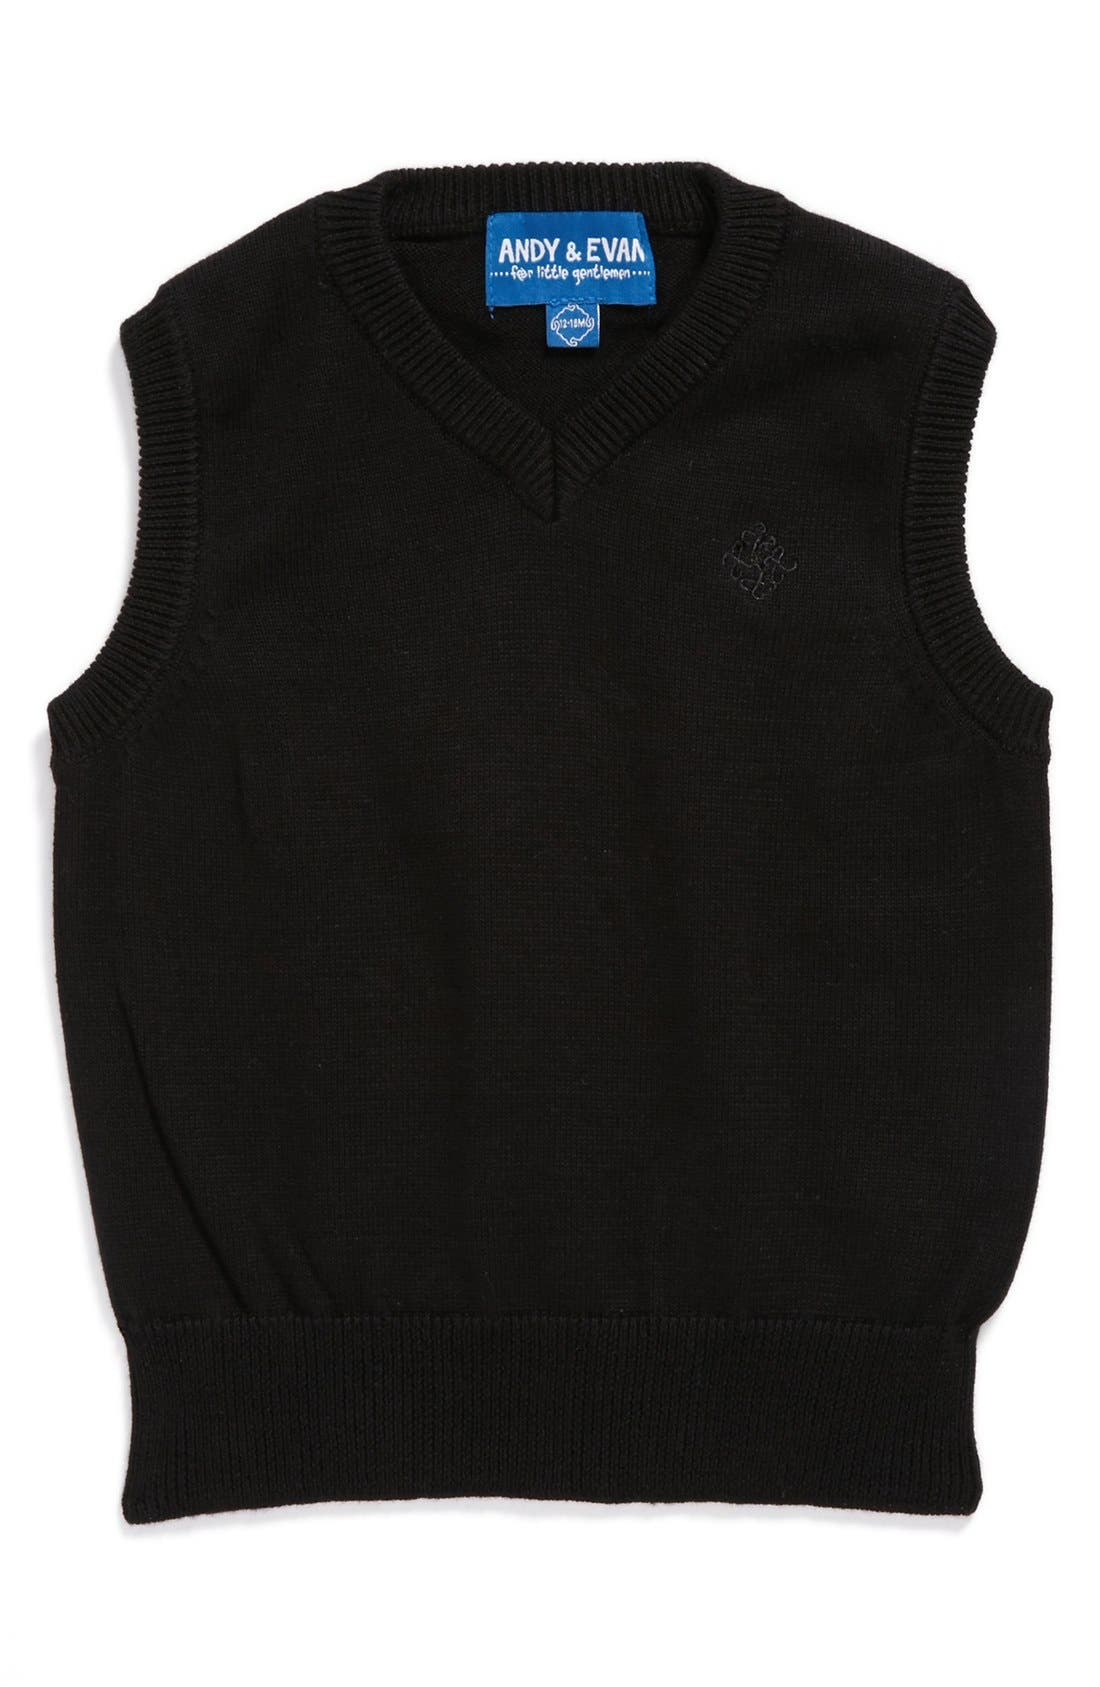 Alternate Image 1 Selected - Andy & Evan for little gentlemen Sweater Vest (Toddler Boys)